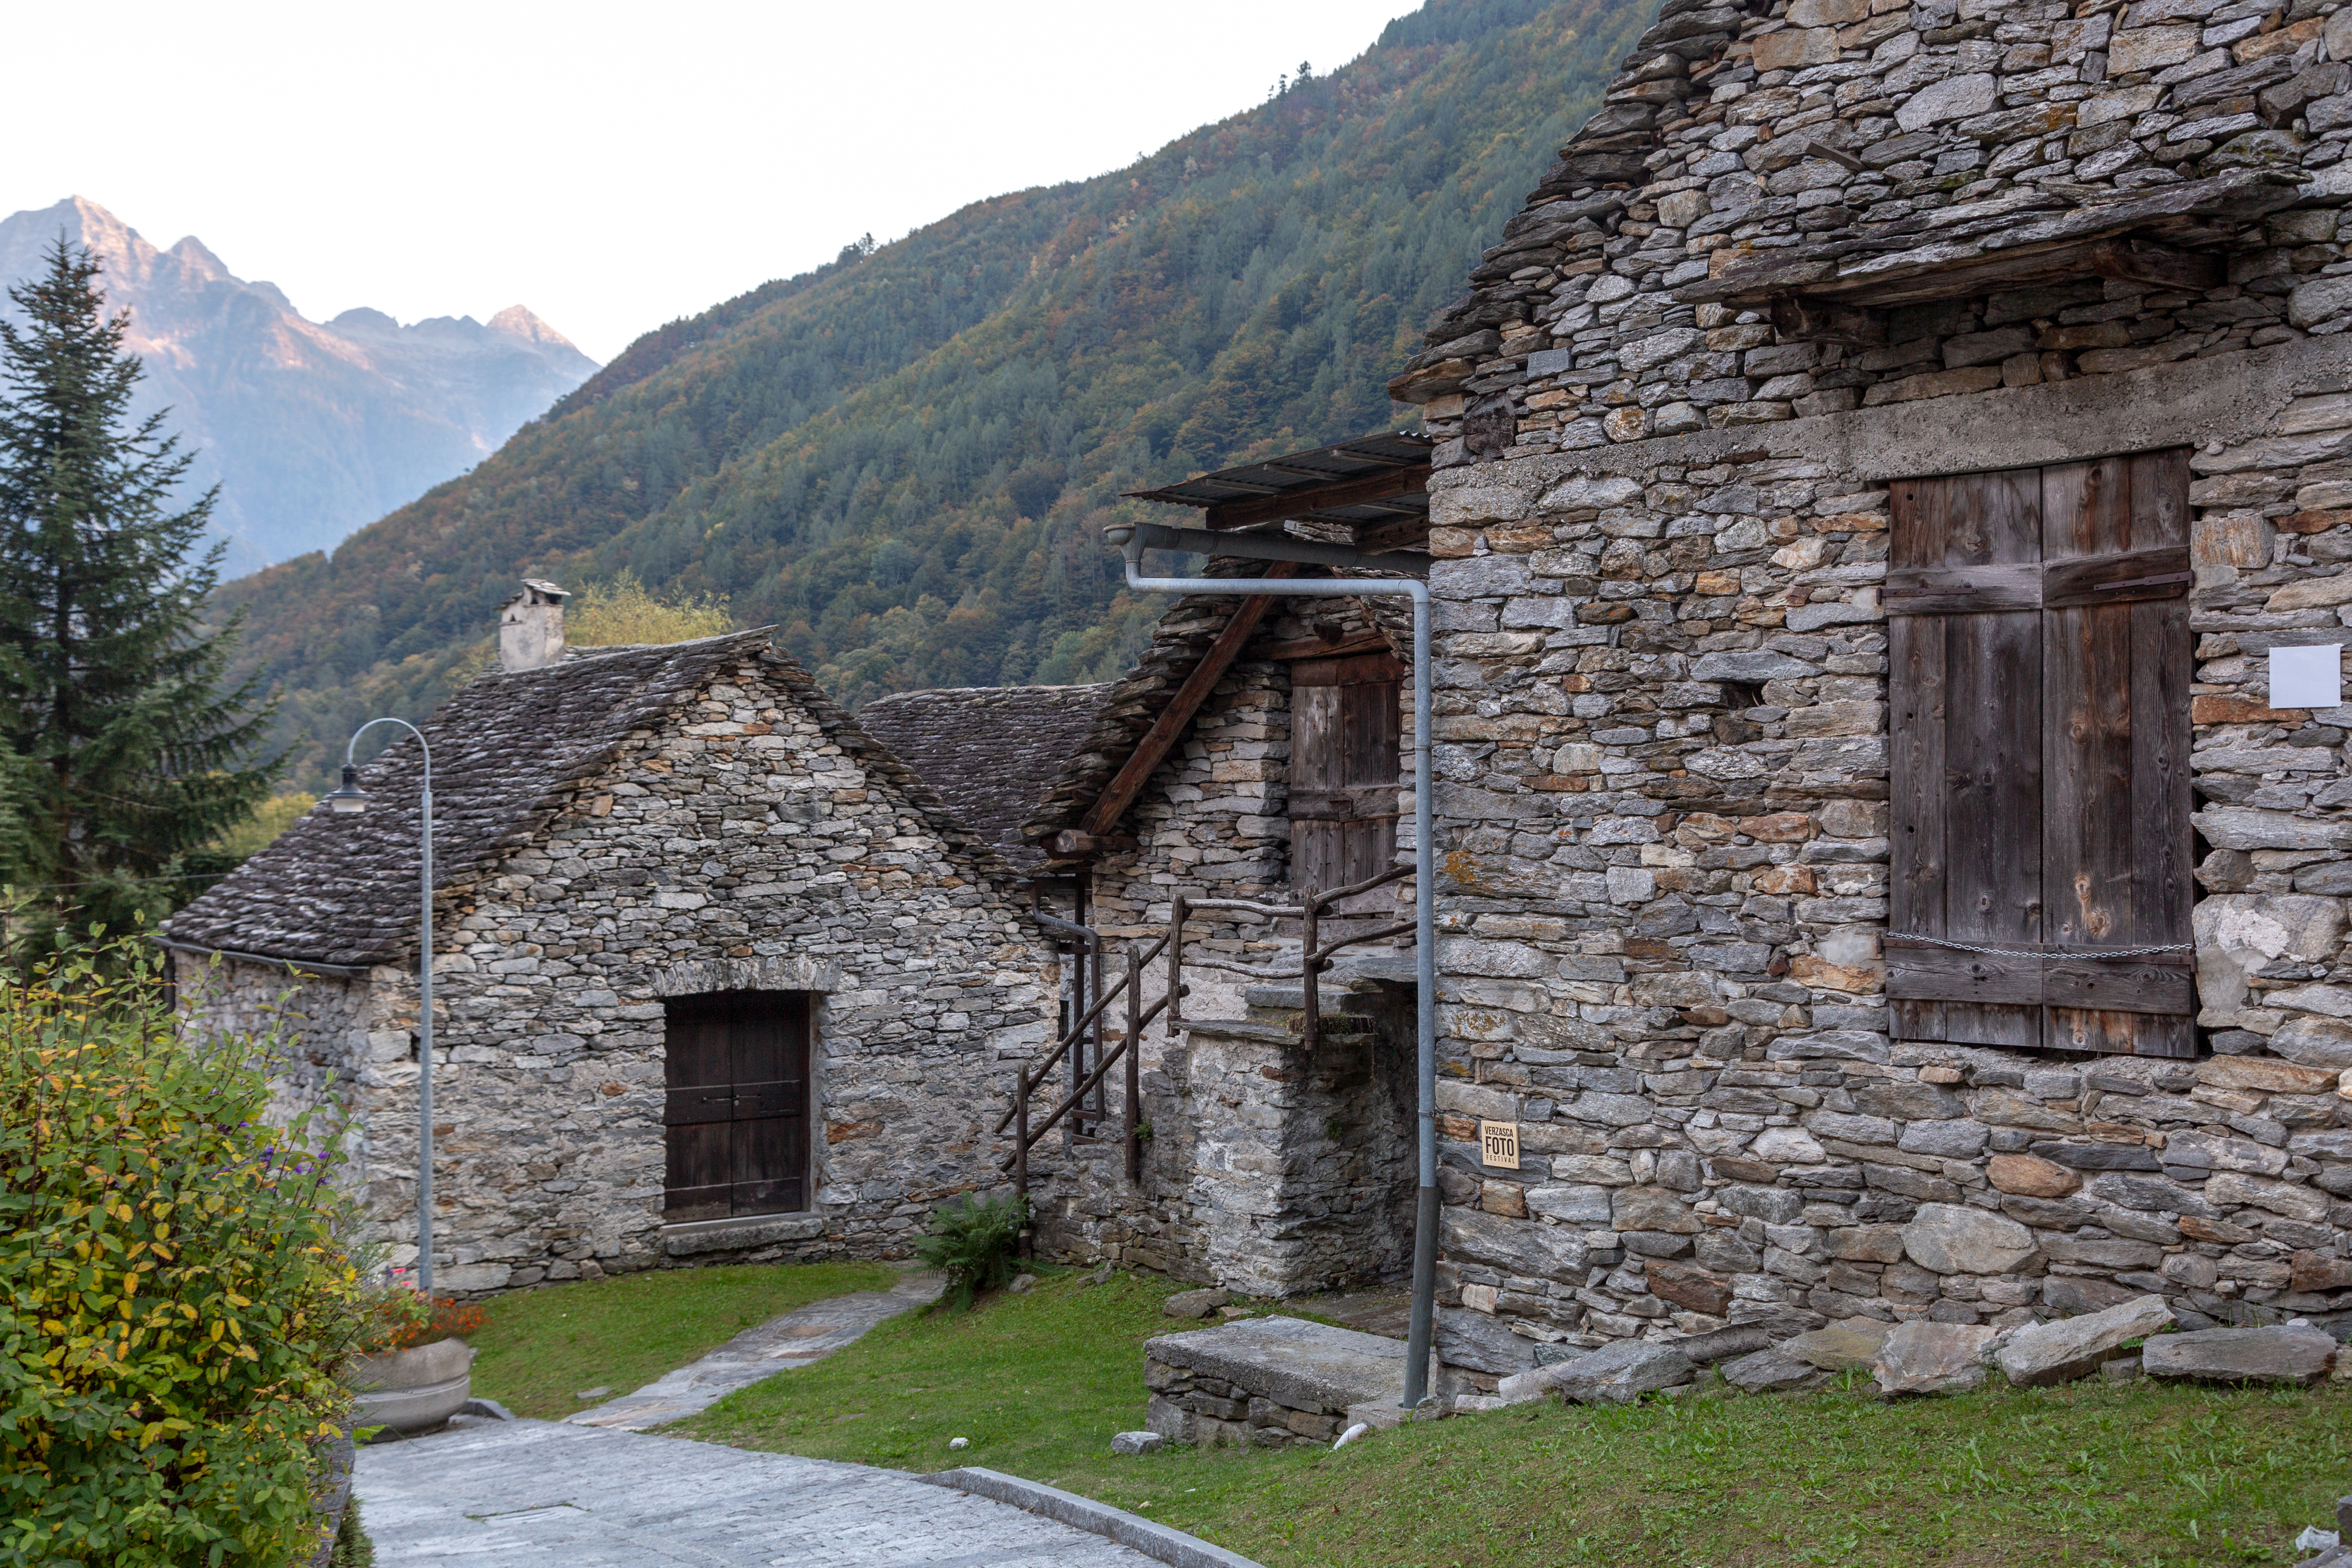 Valle Verzasca, Village of Sonogno